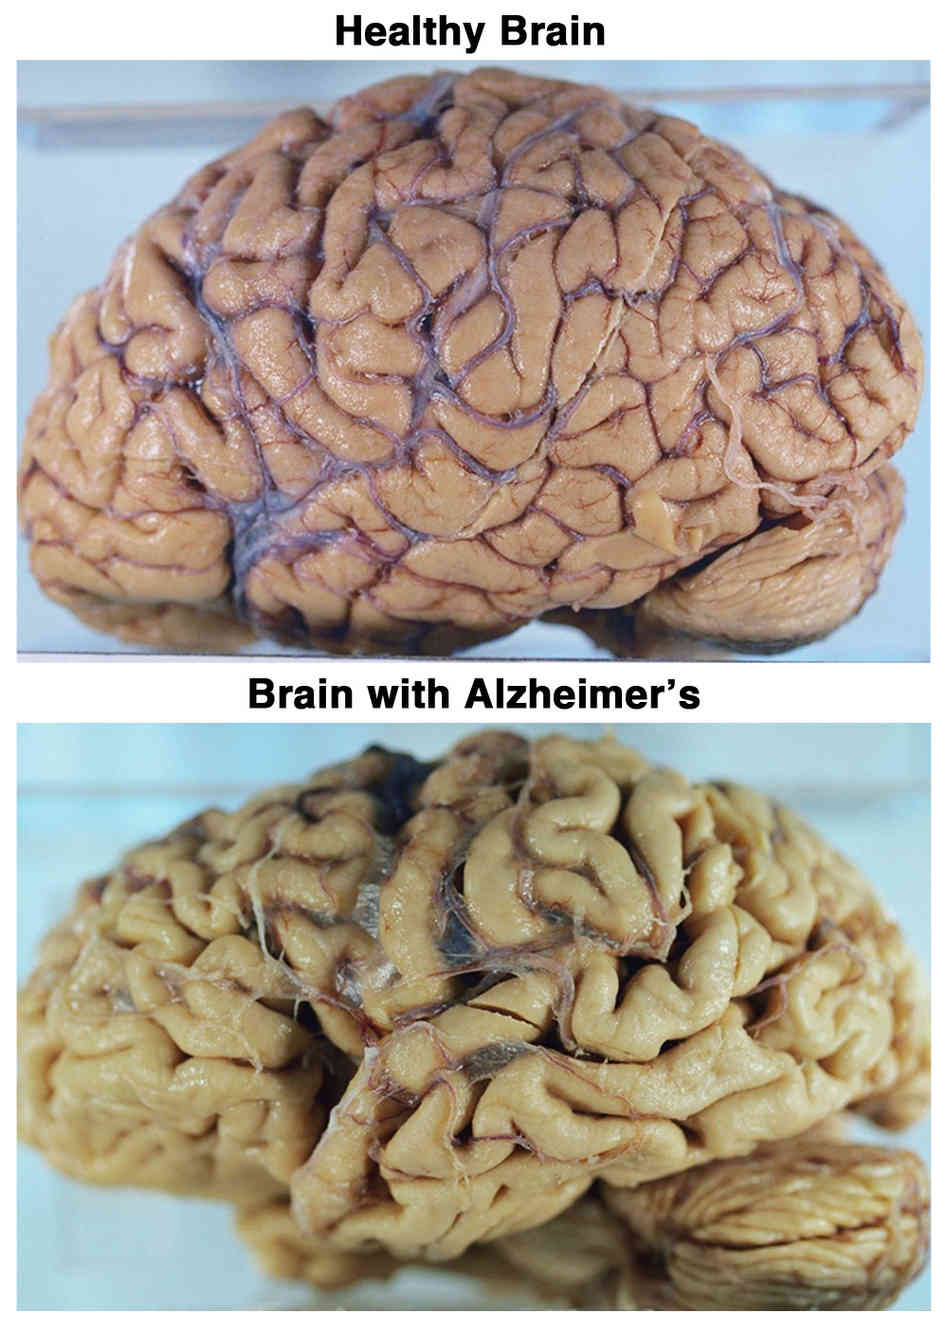 Healthy Brain and Brain with Alzheimer's